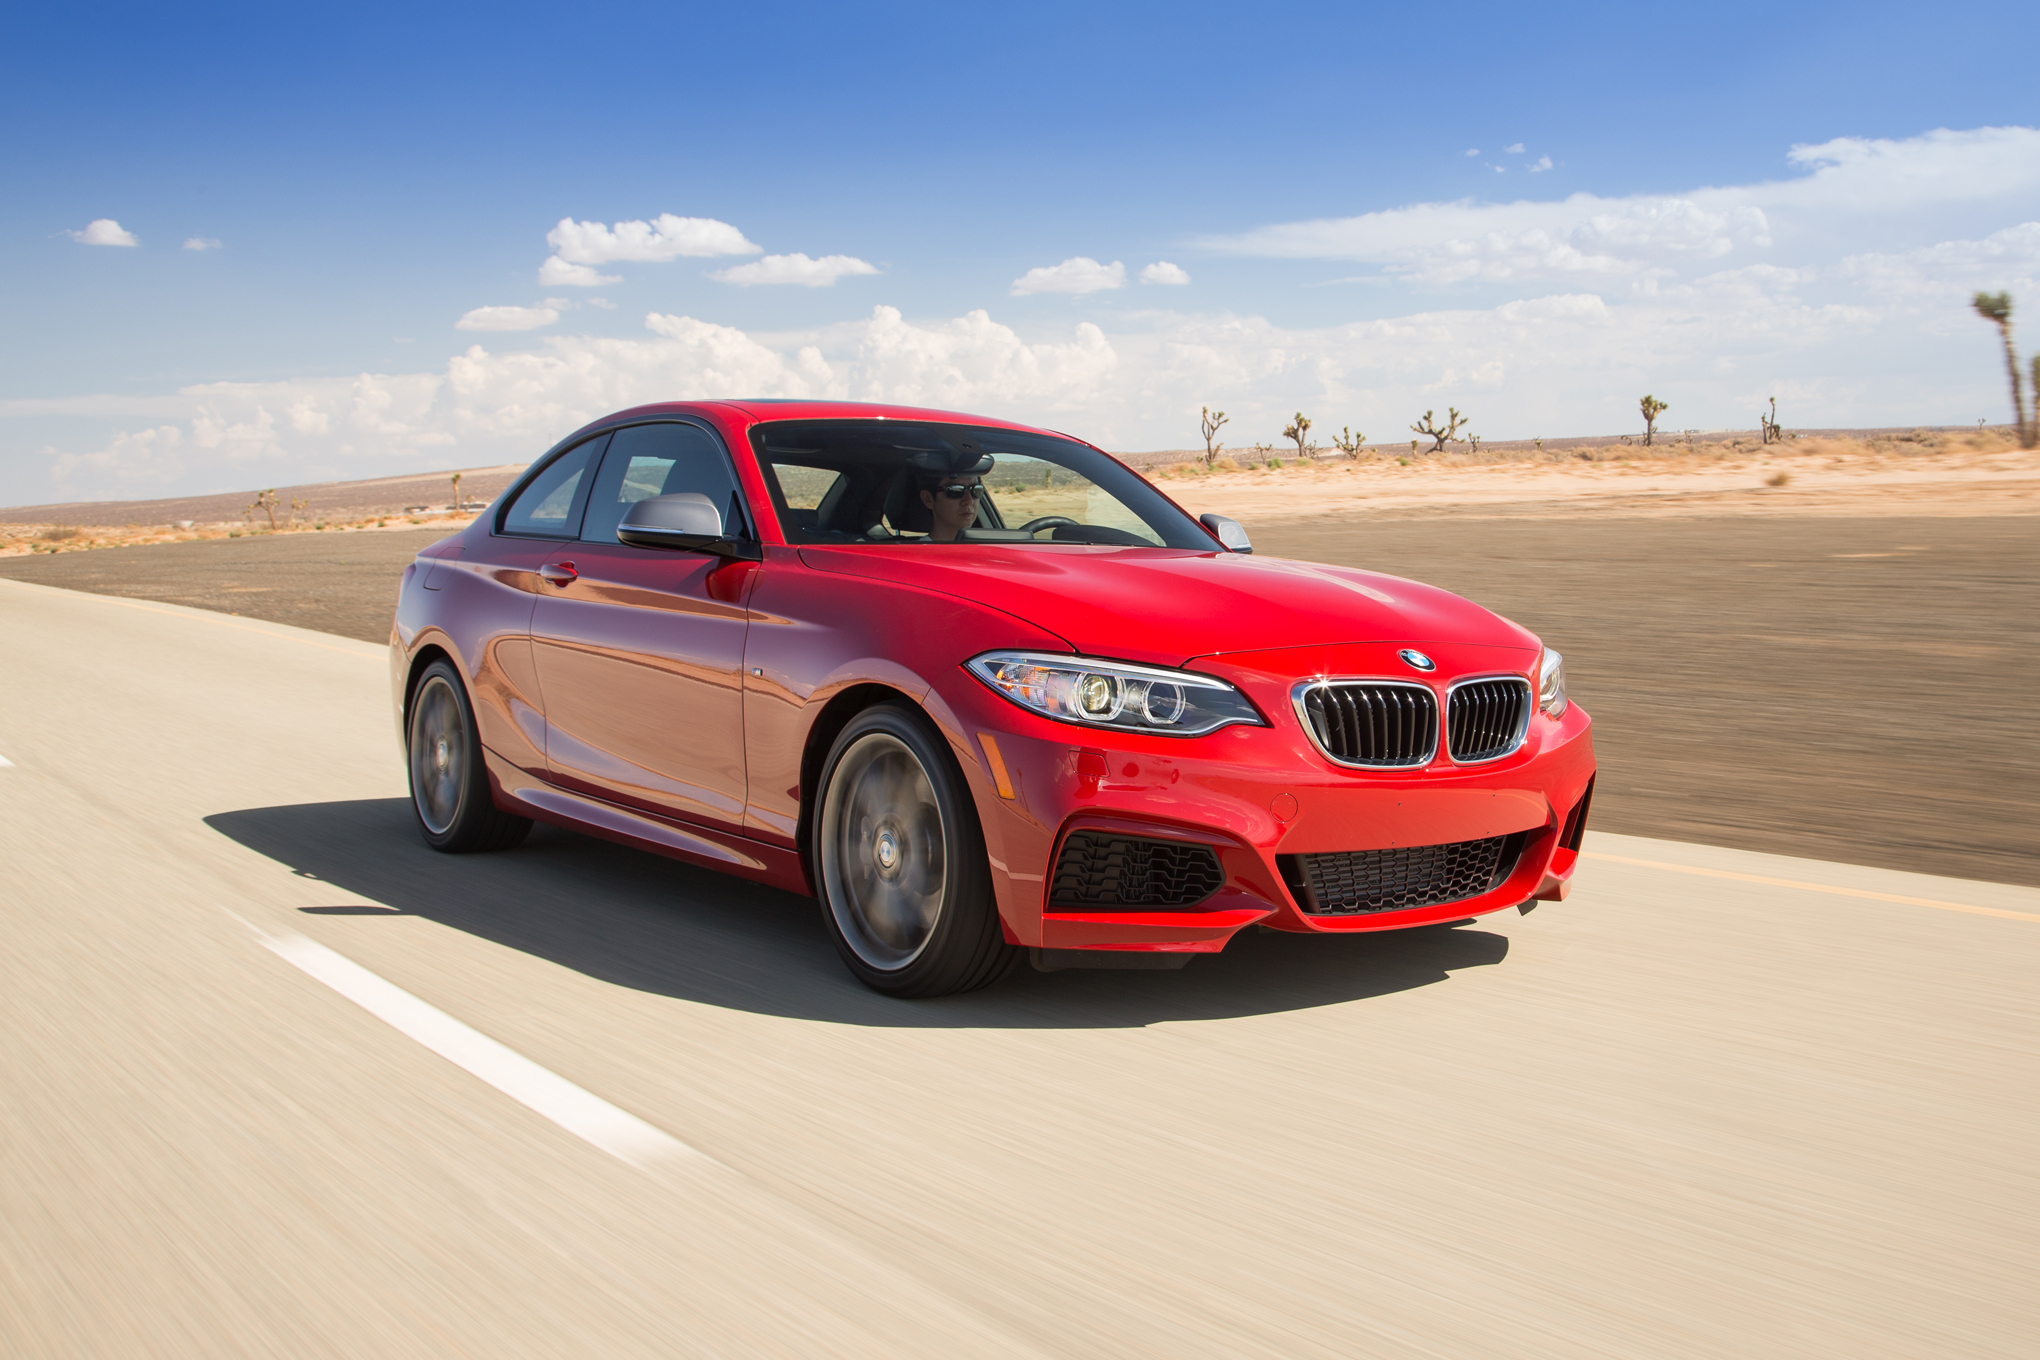 2014 Bmw M235i (Photo 1 of 8)